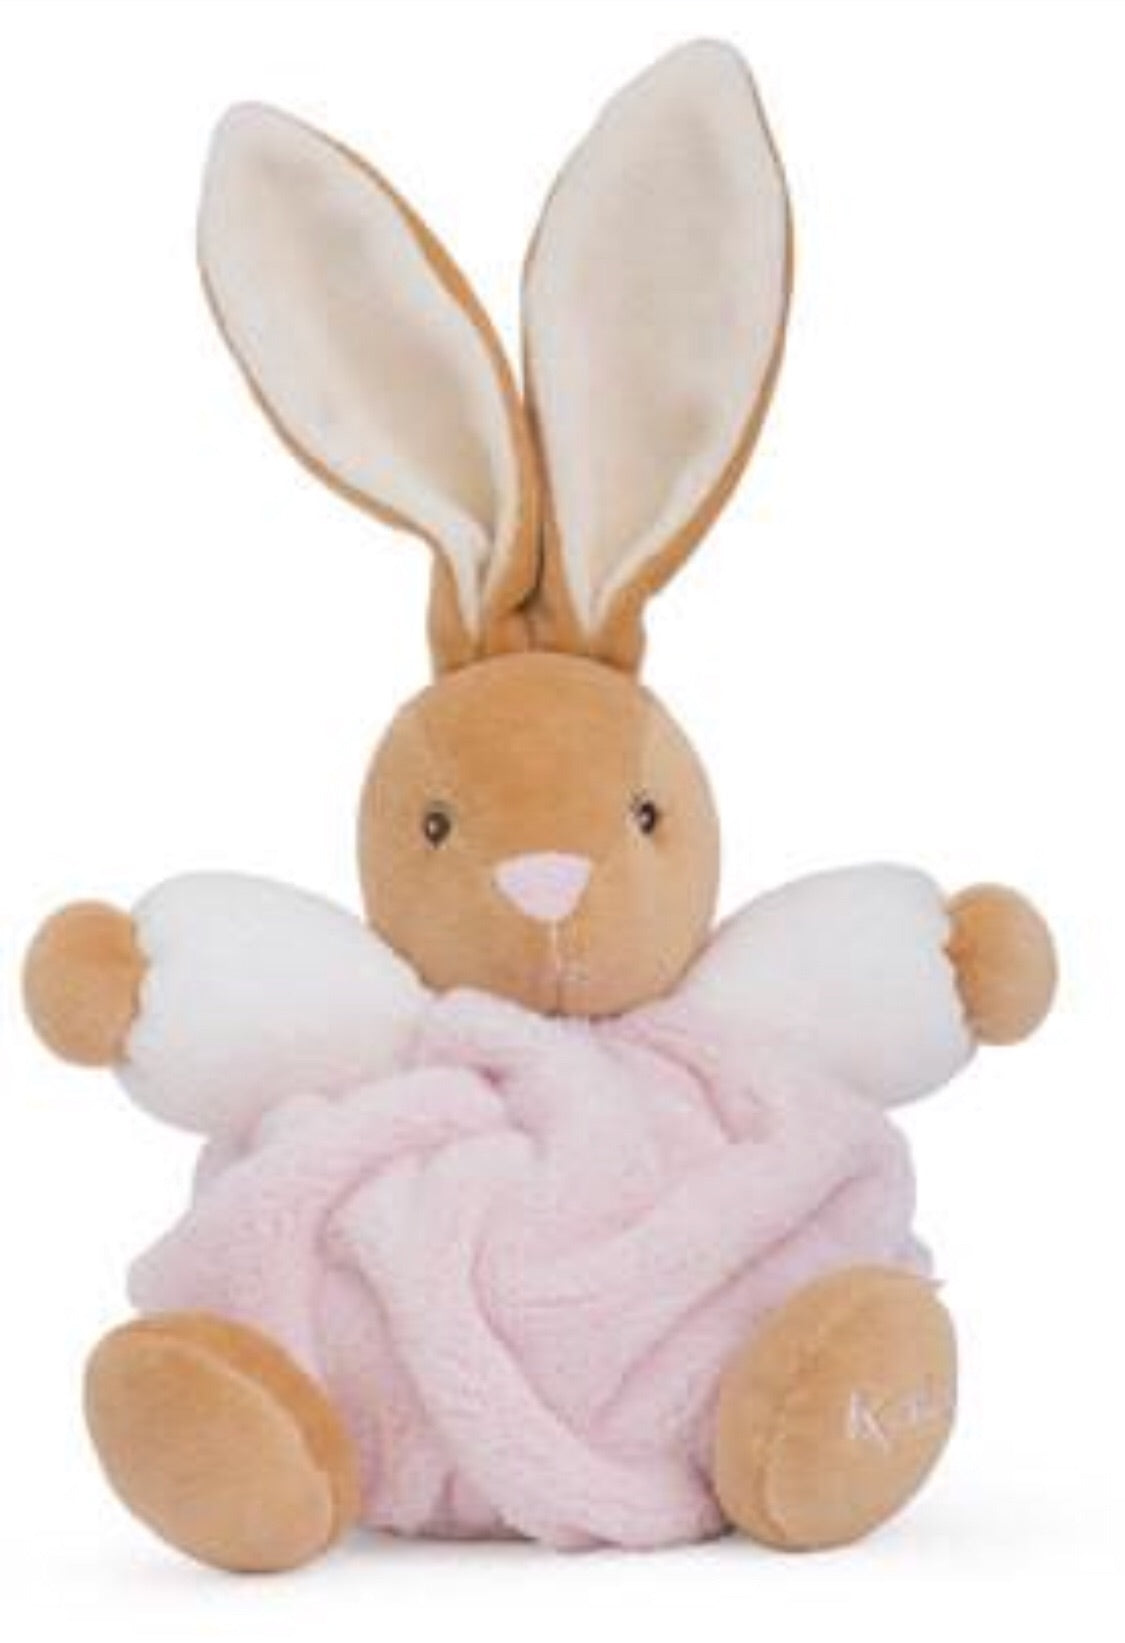 PLUME - SMALL PINK RABBIT - Le Bébé Chic Boutique